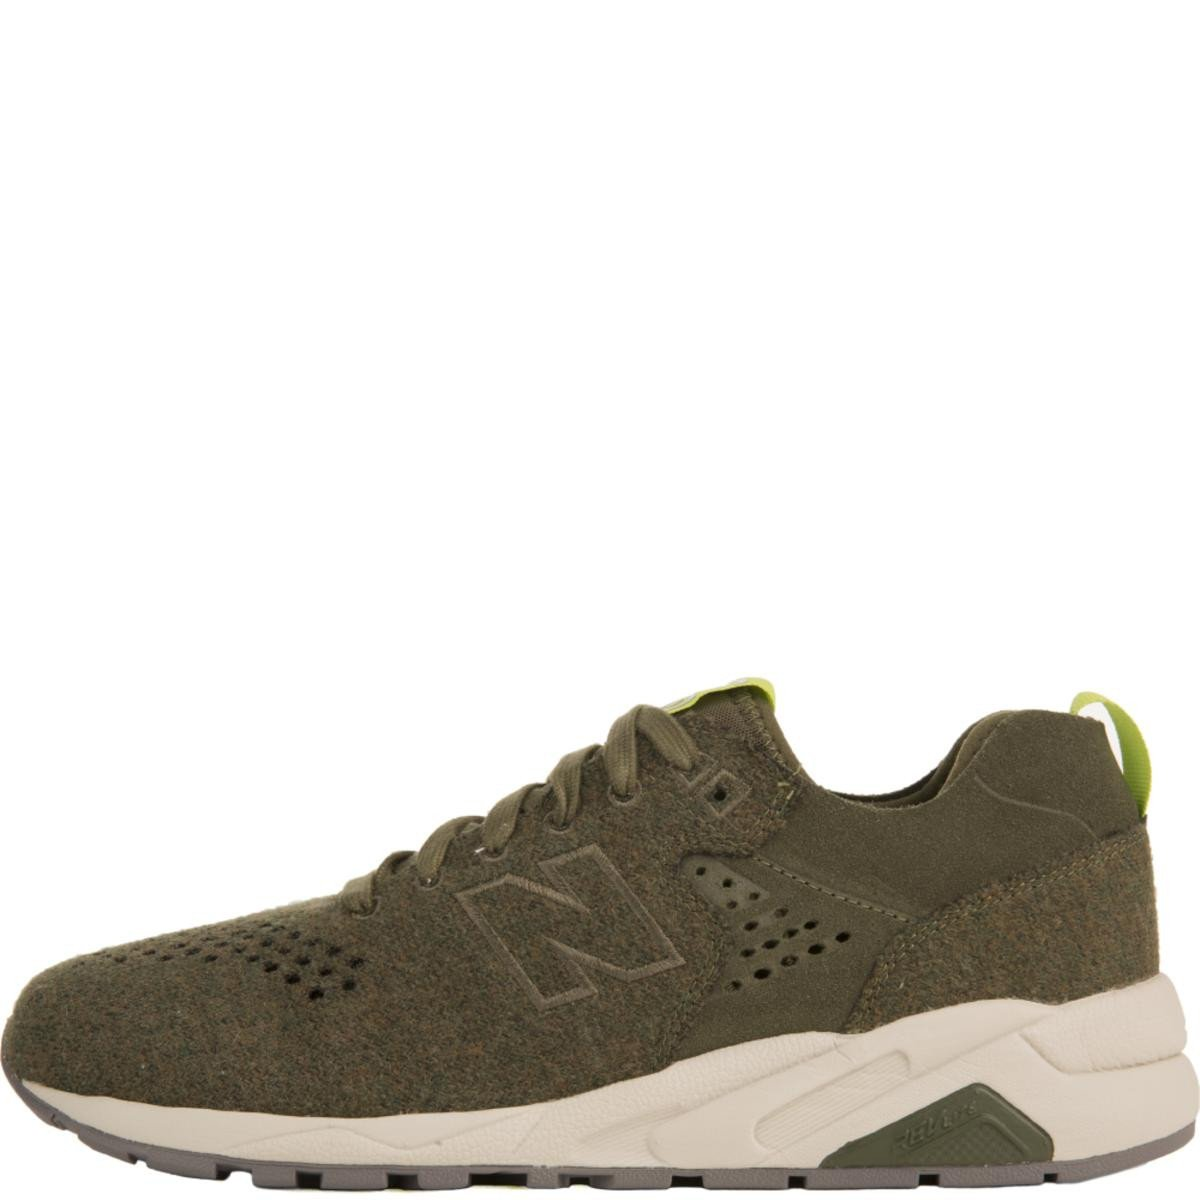 New Balance for Men: 580 Re-Engineered Olive Wool Sneakers